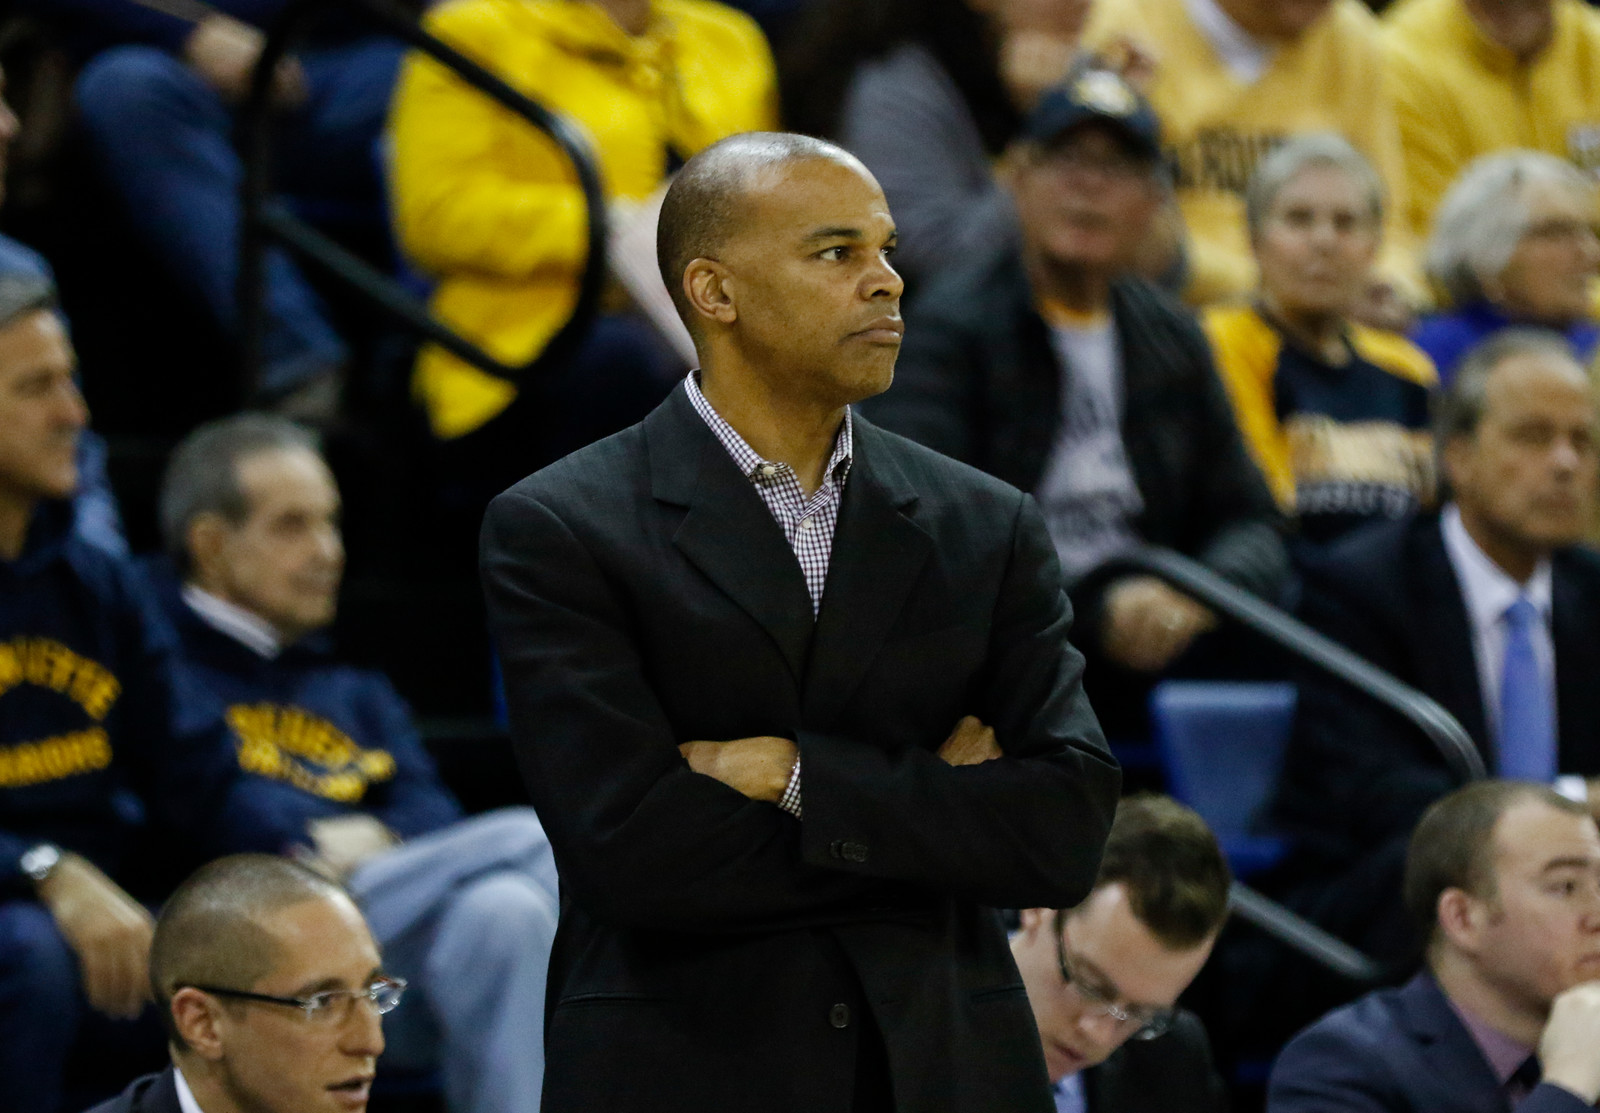 Tommy Amaker played in two games at then-newly constructed Dean Smith Center in his illustrious collegiate career at Duke.